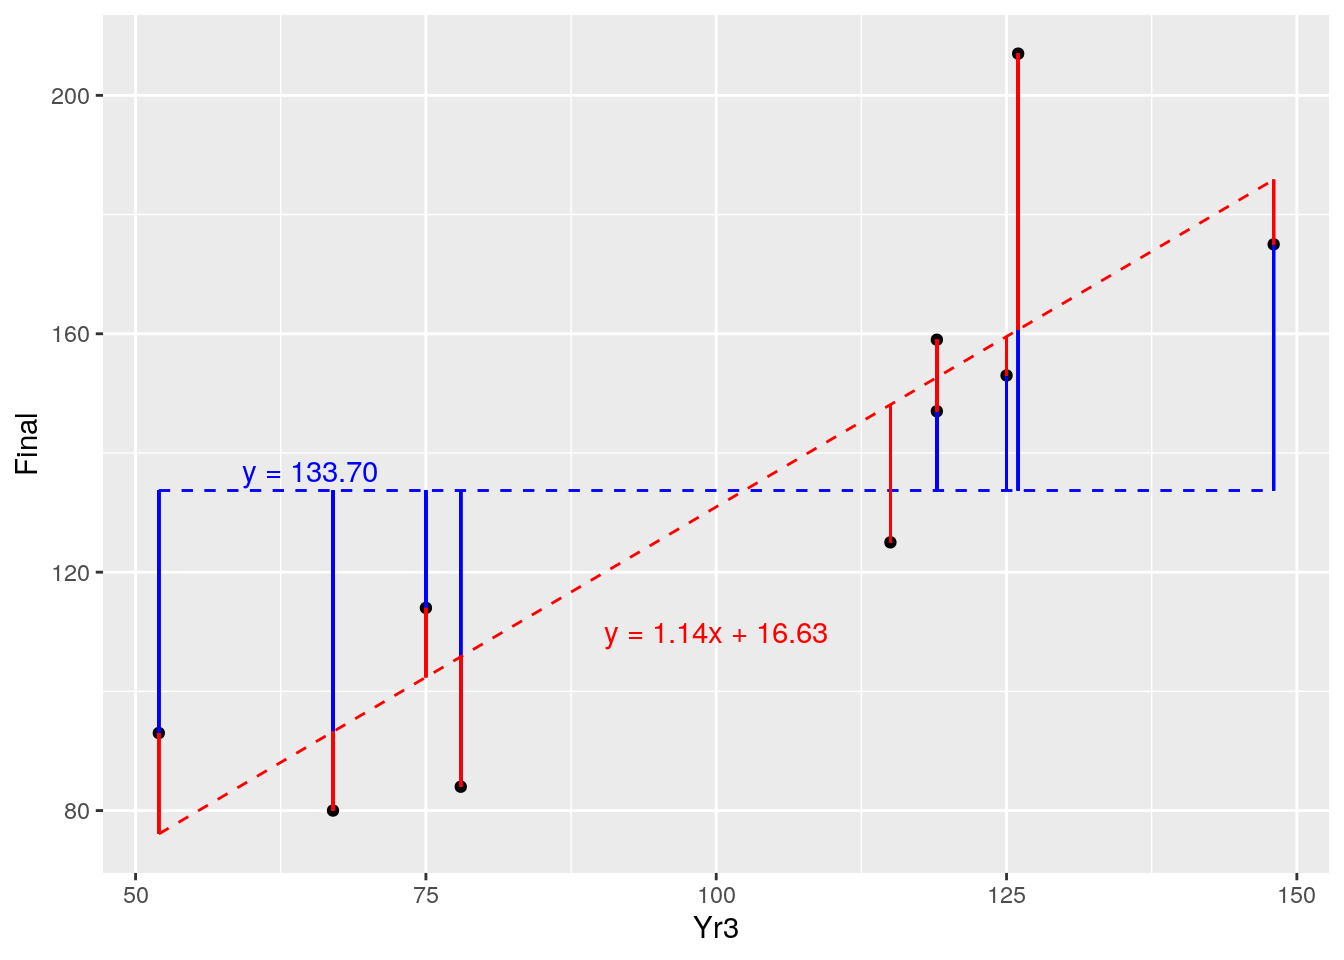 Comparison of residuals of fitted model (red) against random variable (blue)